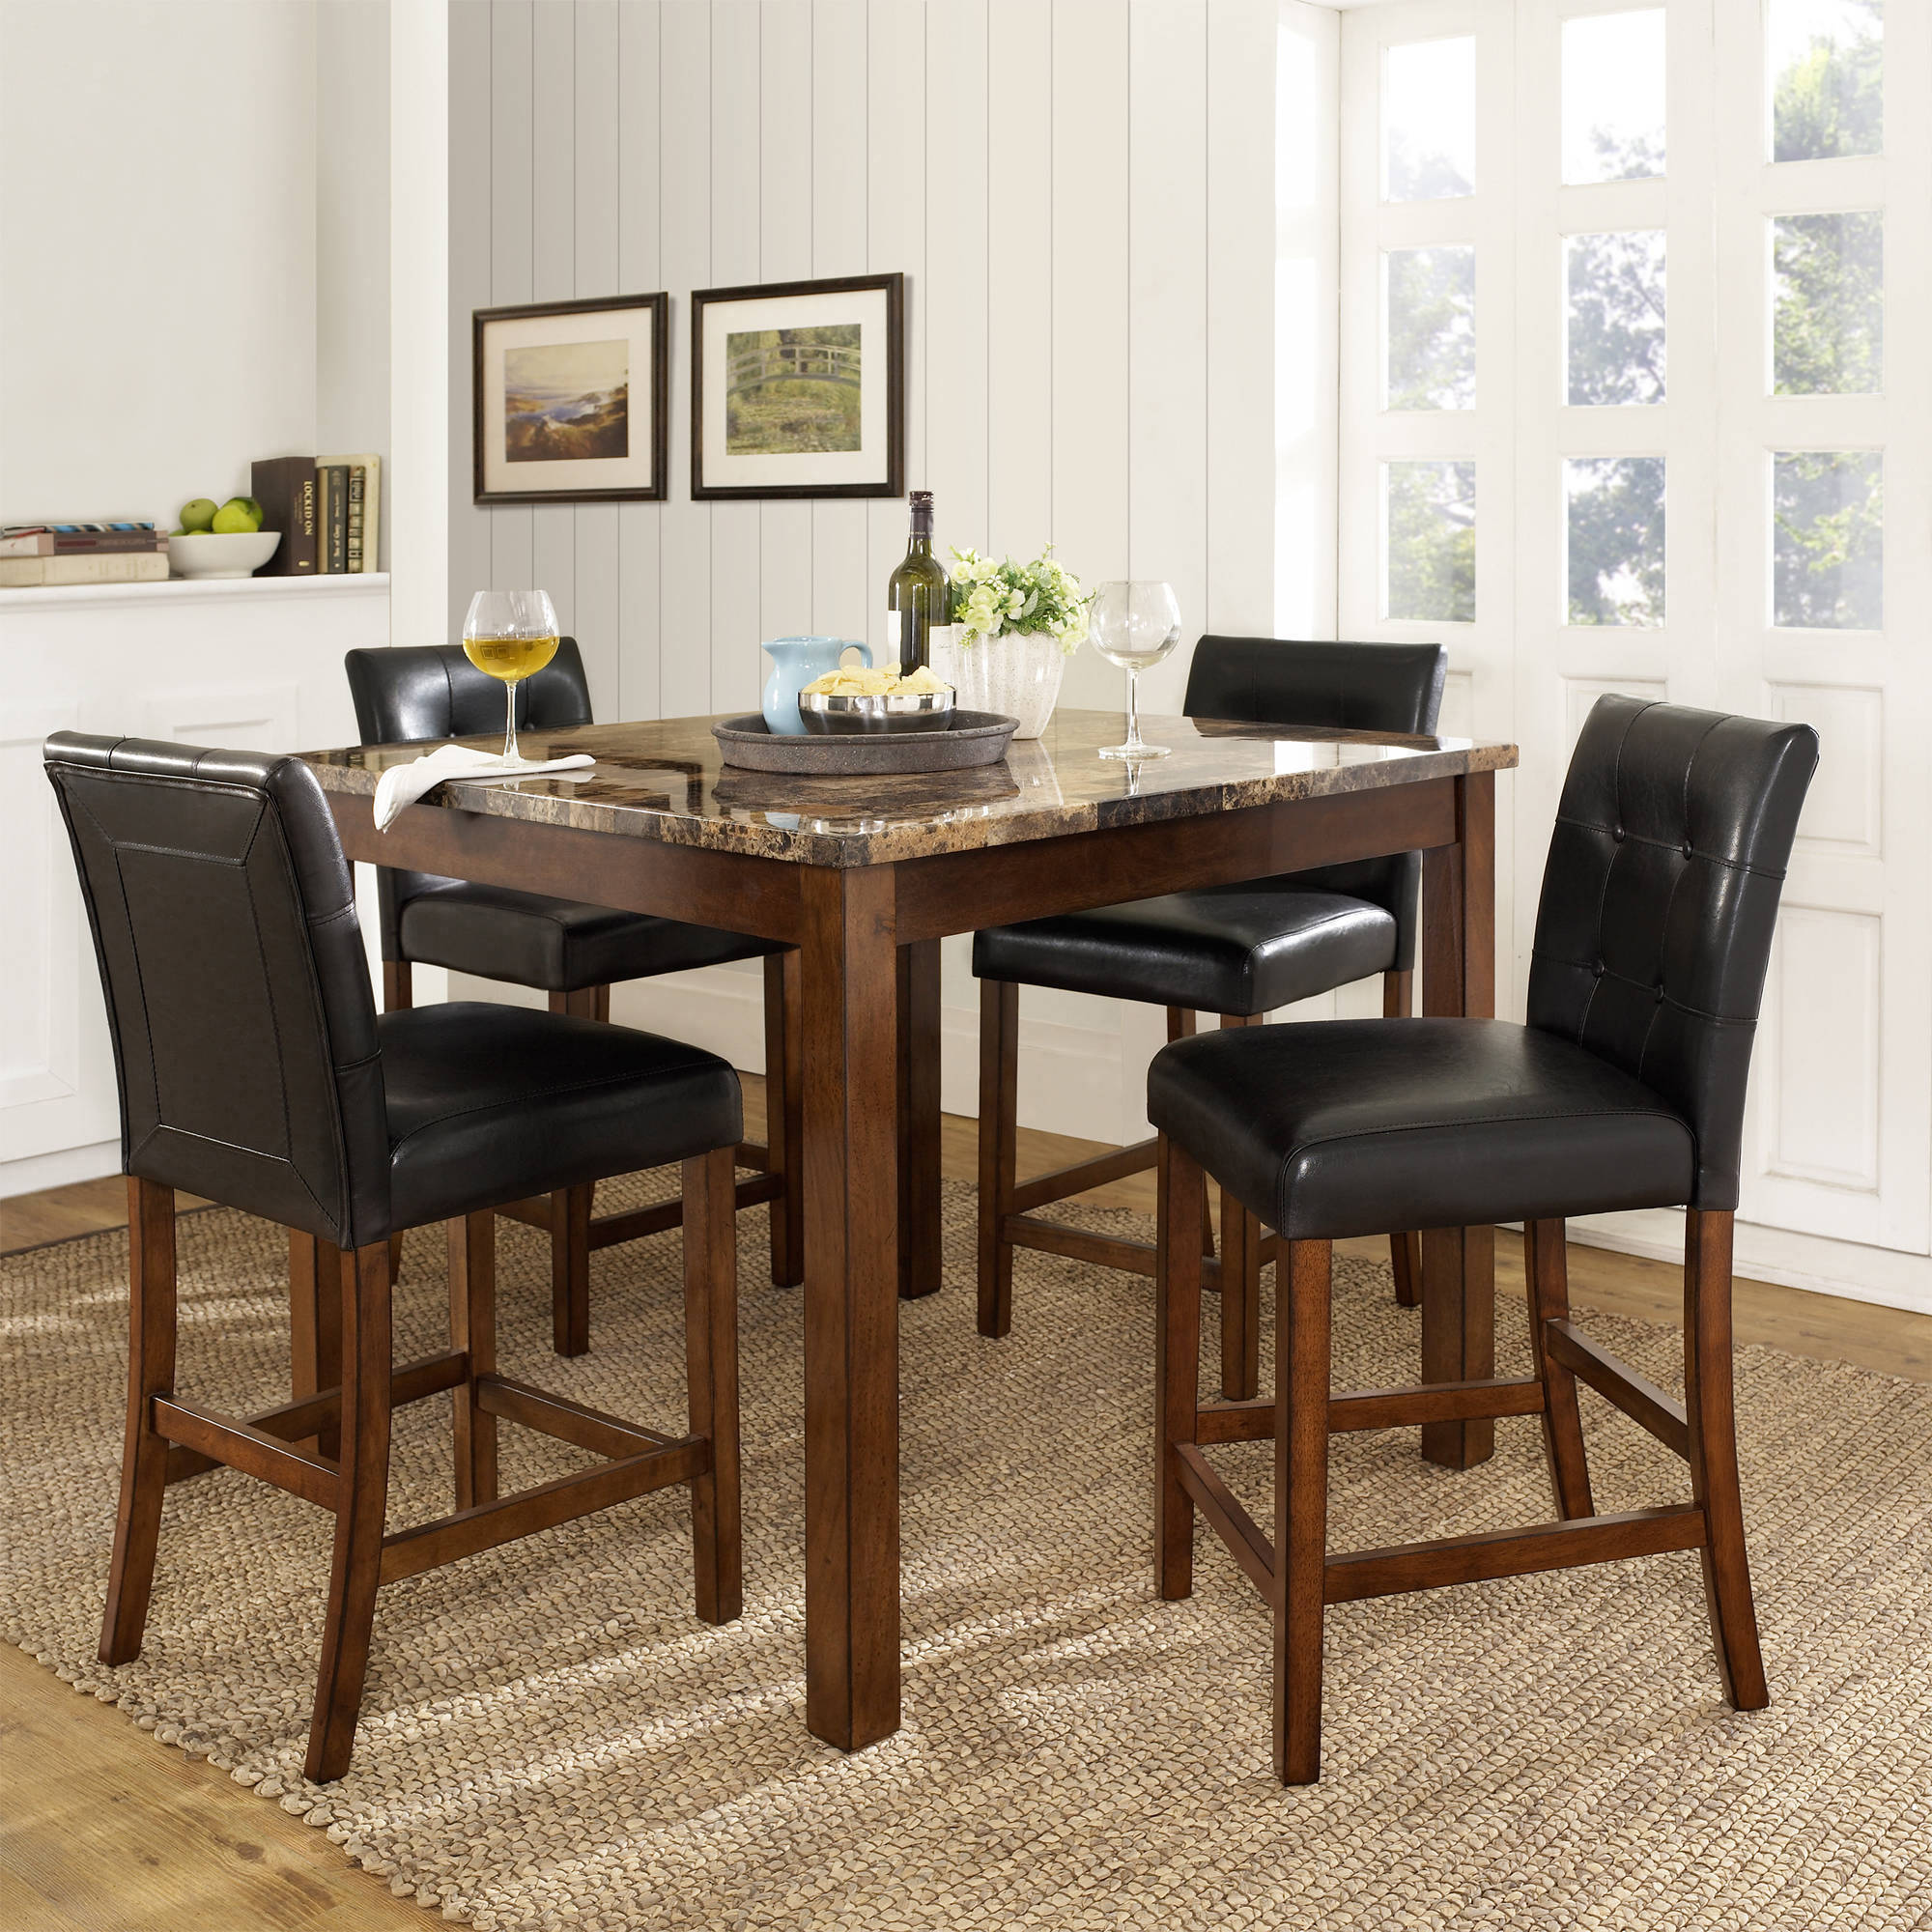 Dorel Living Andover 5 Piece Faux Marble Counter Height Dining Set,  Multiple Colors